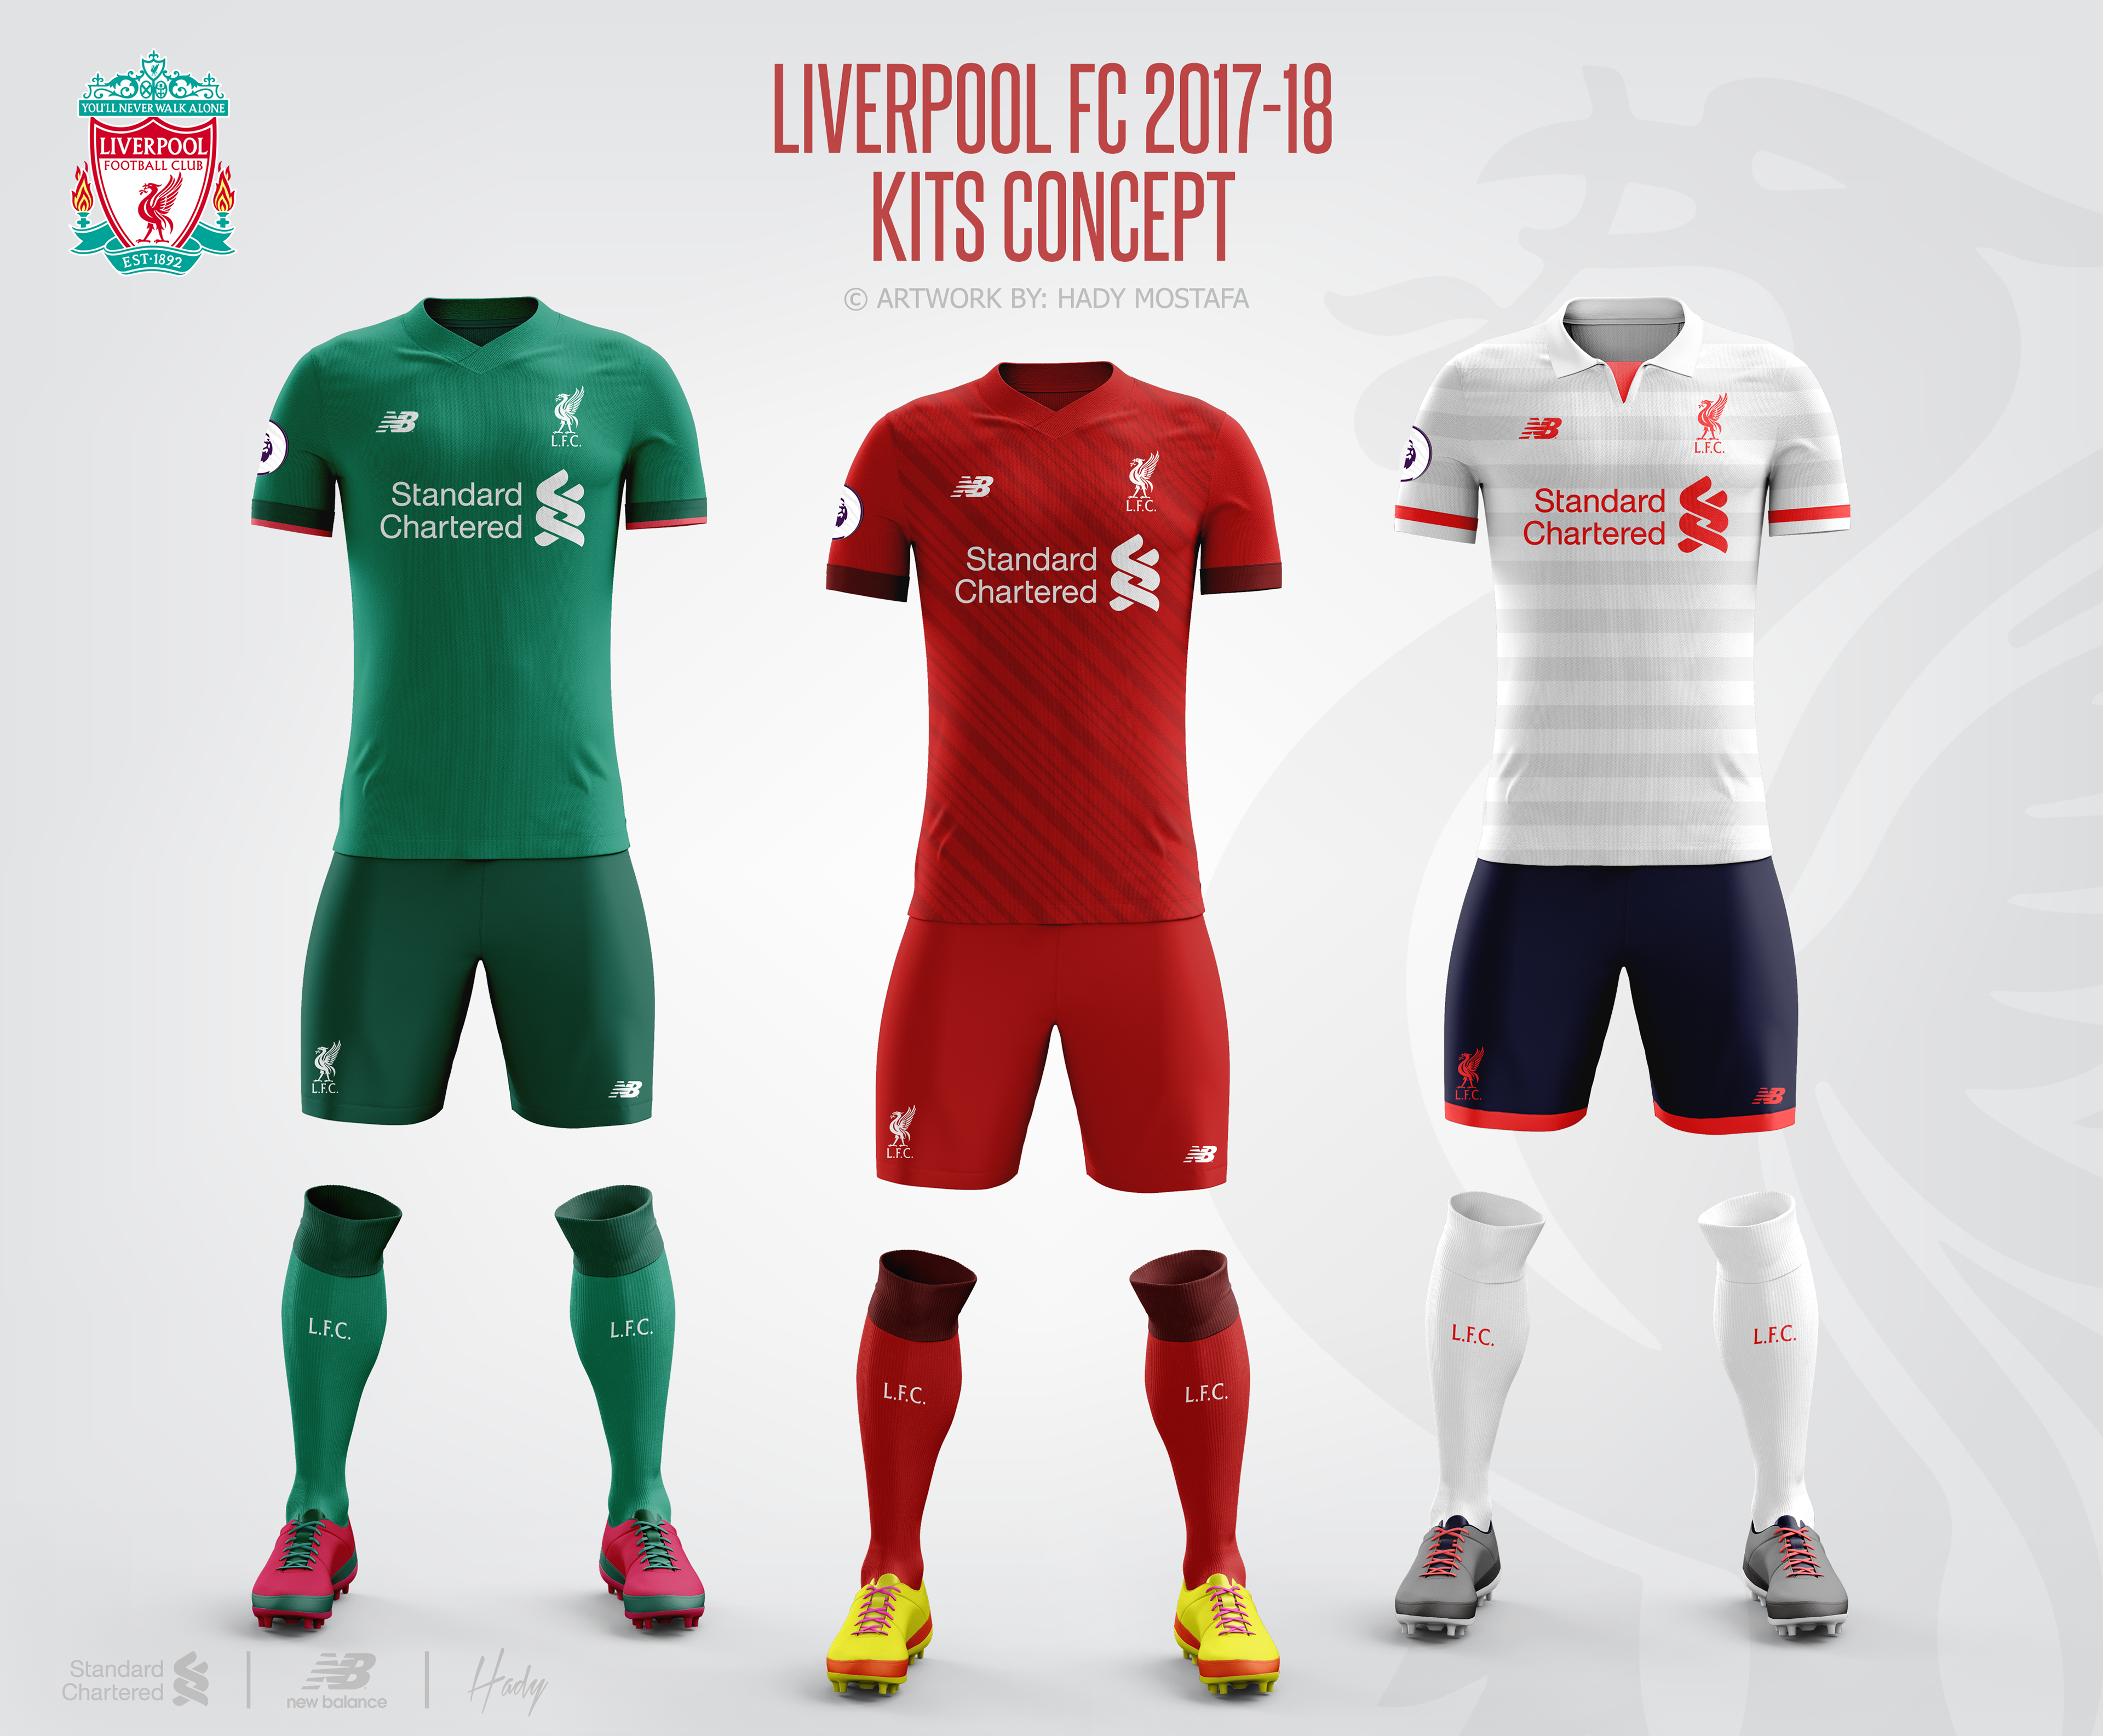 Liverpool FC 2017-18 Kits Concept. on Behance 186714a69